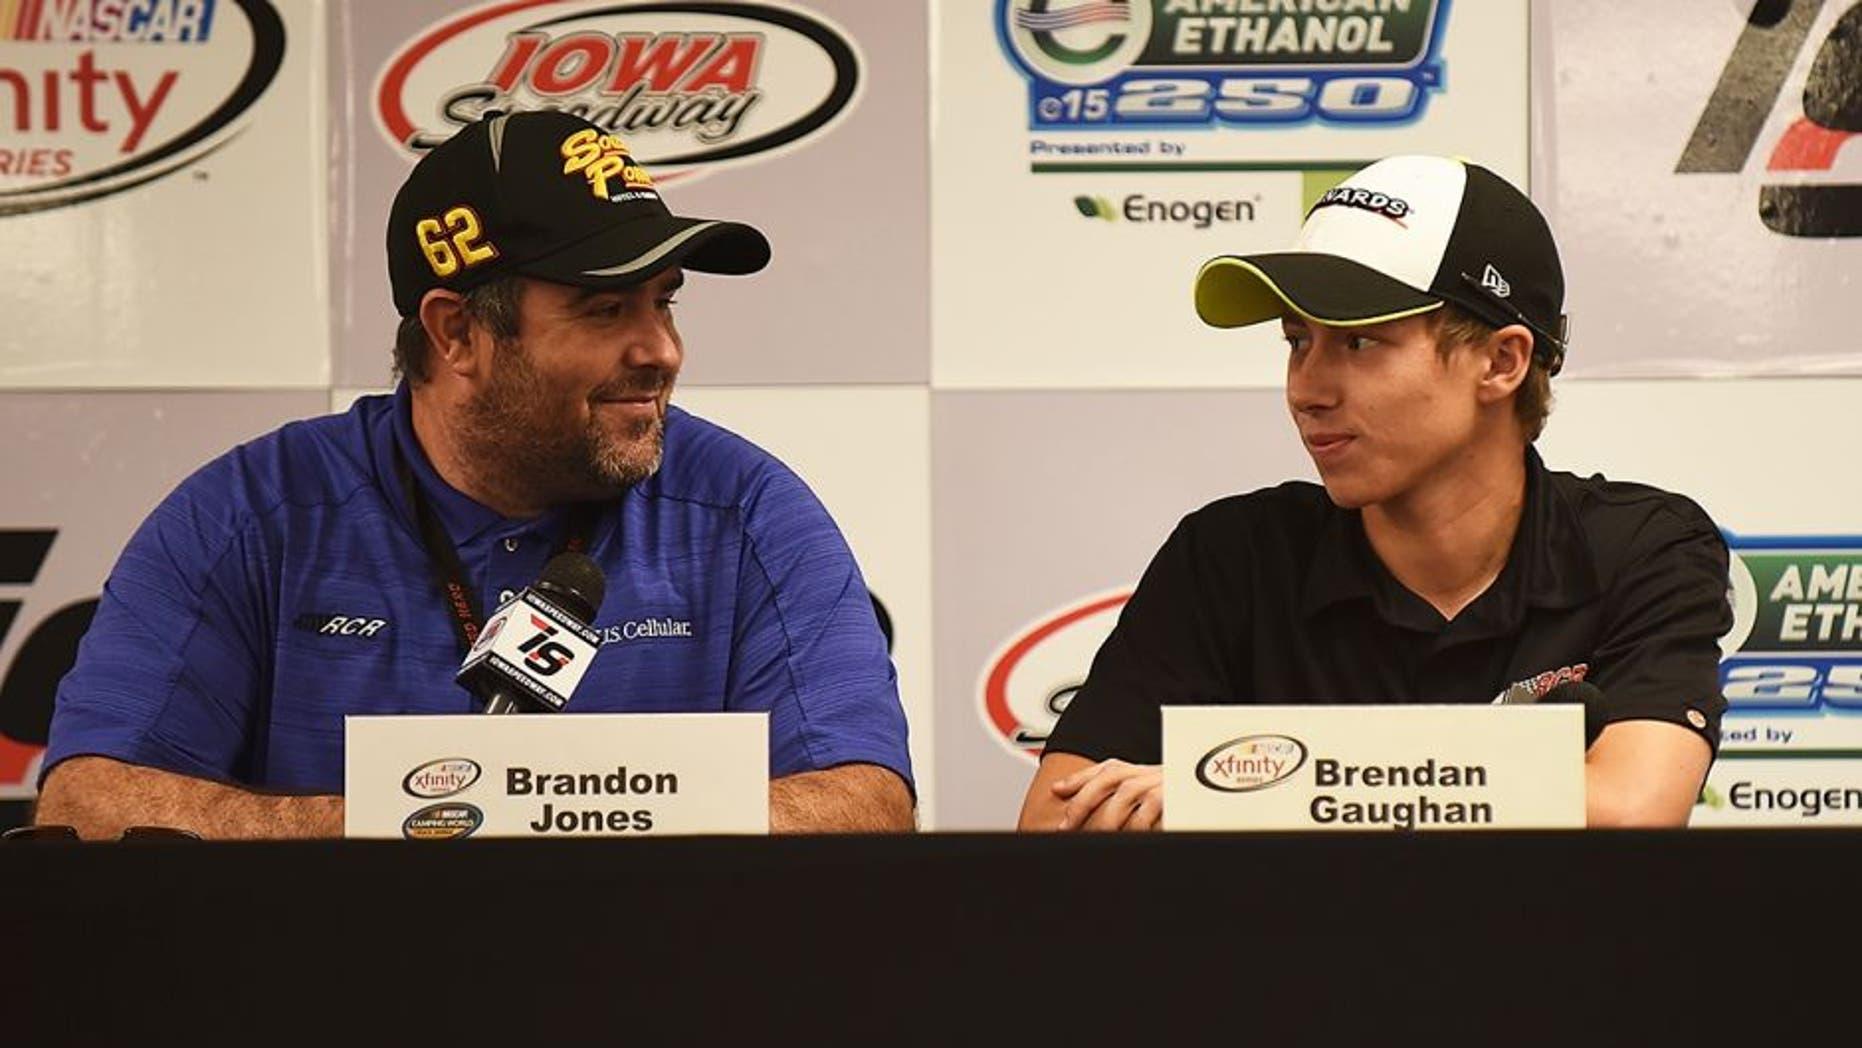 NEWTON, IA - JUNE 18: (L-R) Brendan Gaughan, driver of the #62 South Point Chevrolet and Brandon Jones, driver of the #33 Jeld-Wen / Menards Chevrolet, speak during a press conference at Iowa Speedway on June 18, 2016 in Newton, Iowa. (Photo by Jonathan Moore/NASCAR via Getty Images)